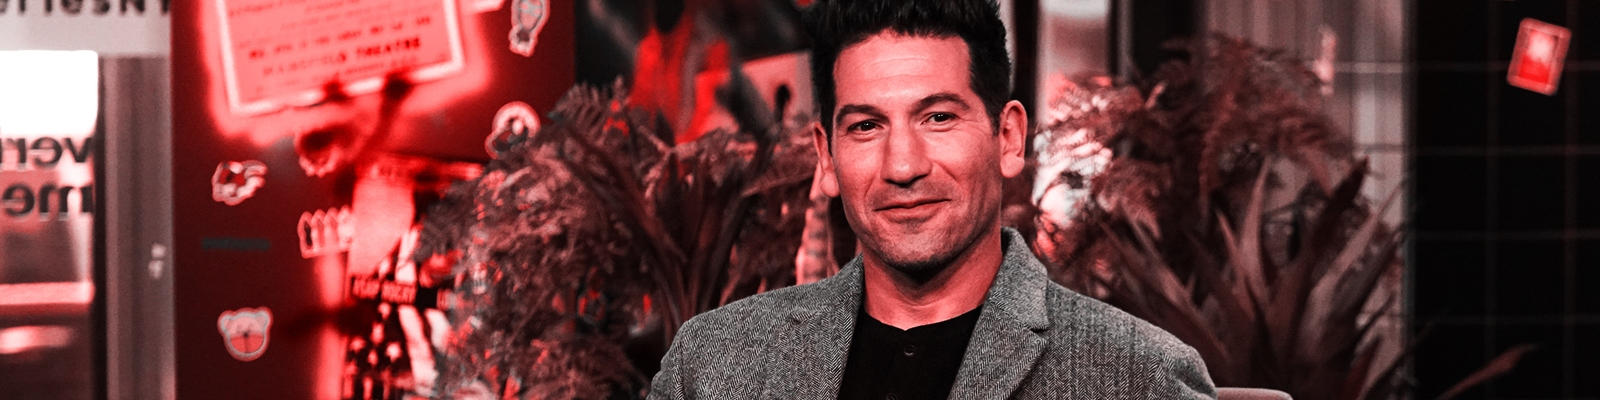 Jon Bernthal On 'Ford V Ferrari,' Playing Johnny Boy Soprano In 'The Many Saints of Newark,' And The Endearing Legacy Of 'The Accountant'